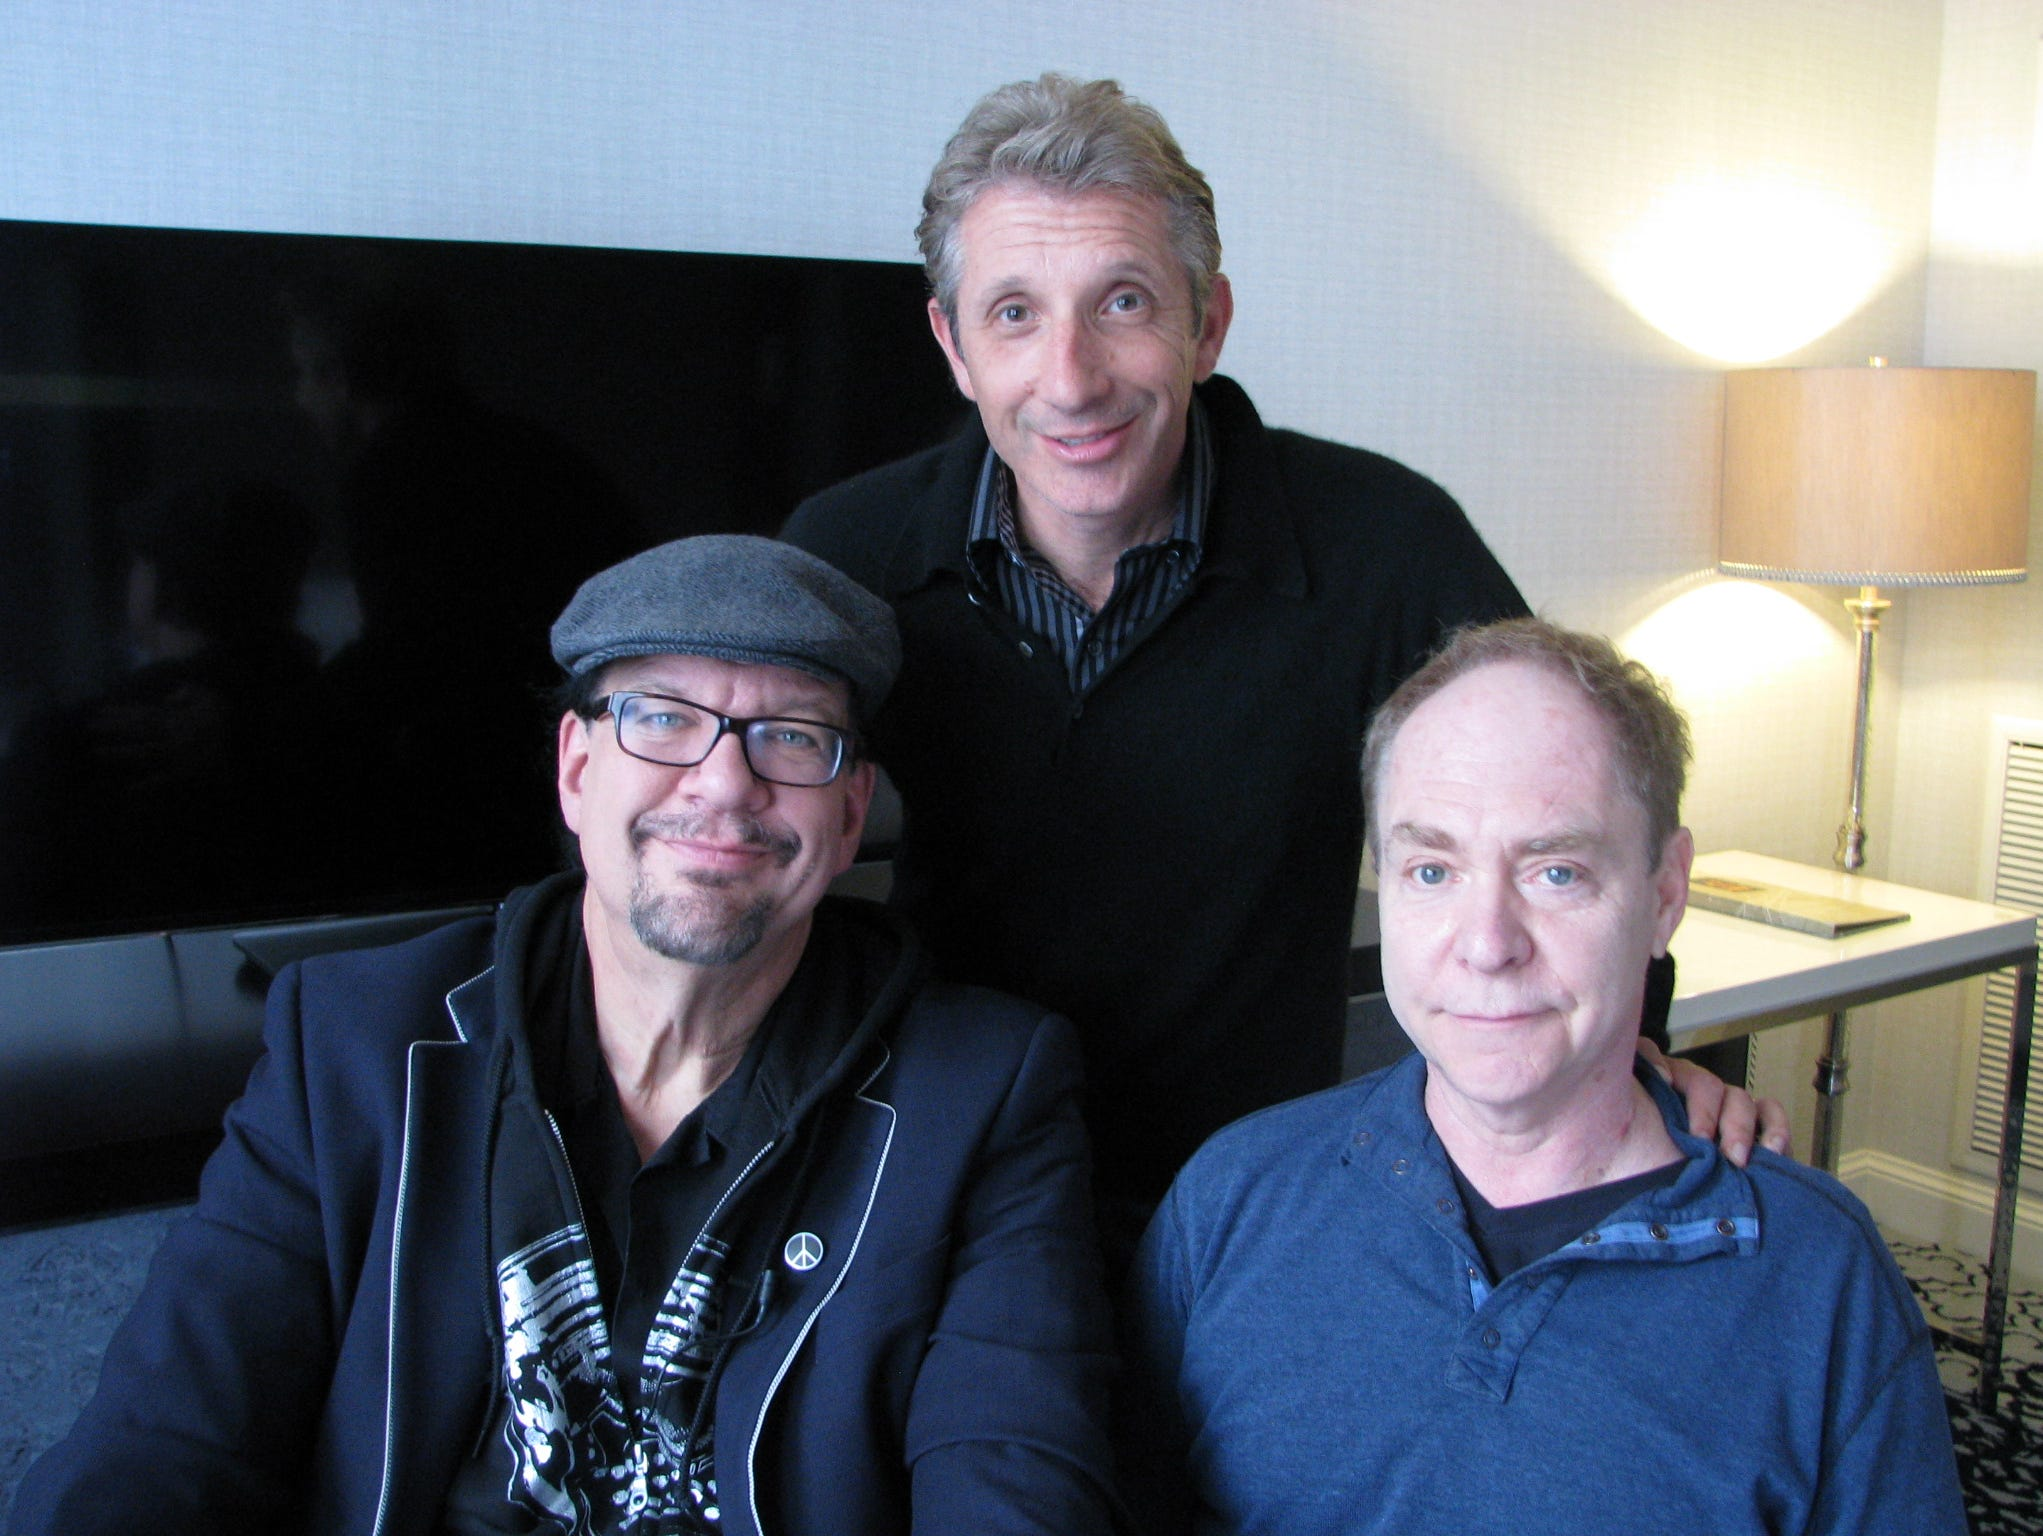 Magicians Penn Jillette (left) and his partner Teller (right) with reporter Marco della Cava (center). Penn & Teller were in San Francisco Tuesday Feb. 3, 2015 to be honored at a comedy festival.